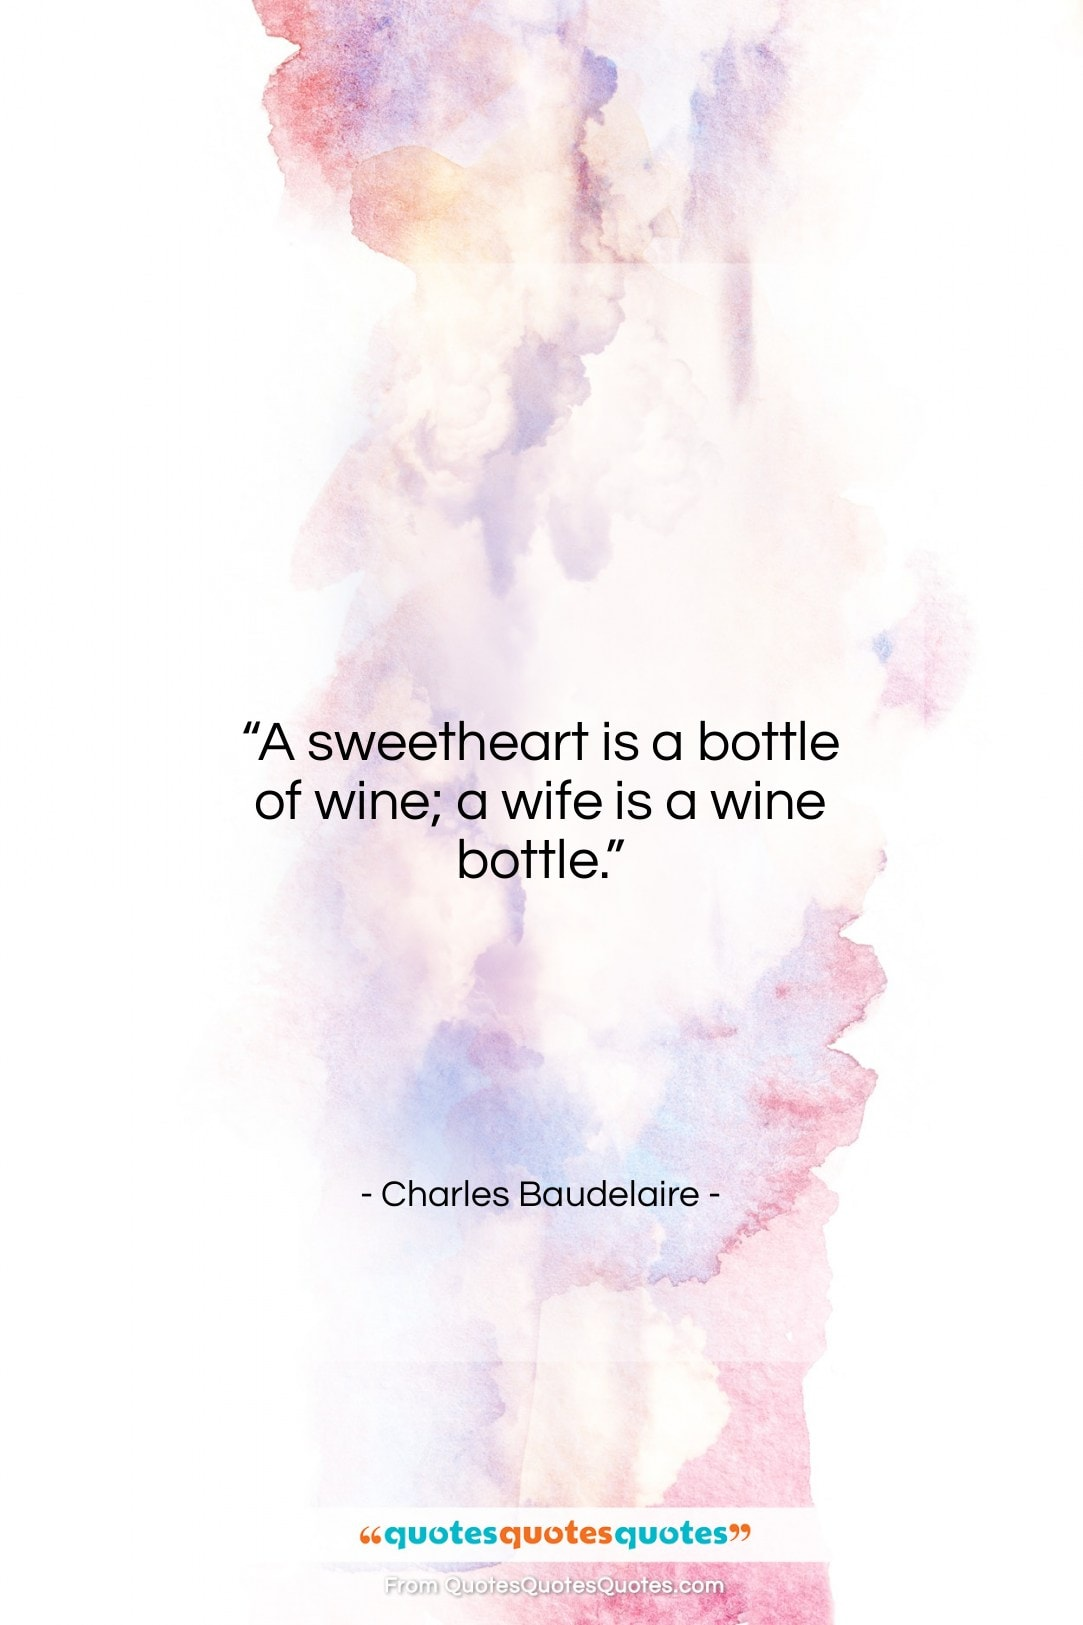 """Charles Baudelaire quote: """"A sweetheart is a bottle of wine;…""""- at QuotesQuotesQuotes.com"""